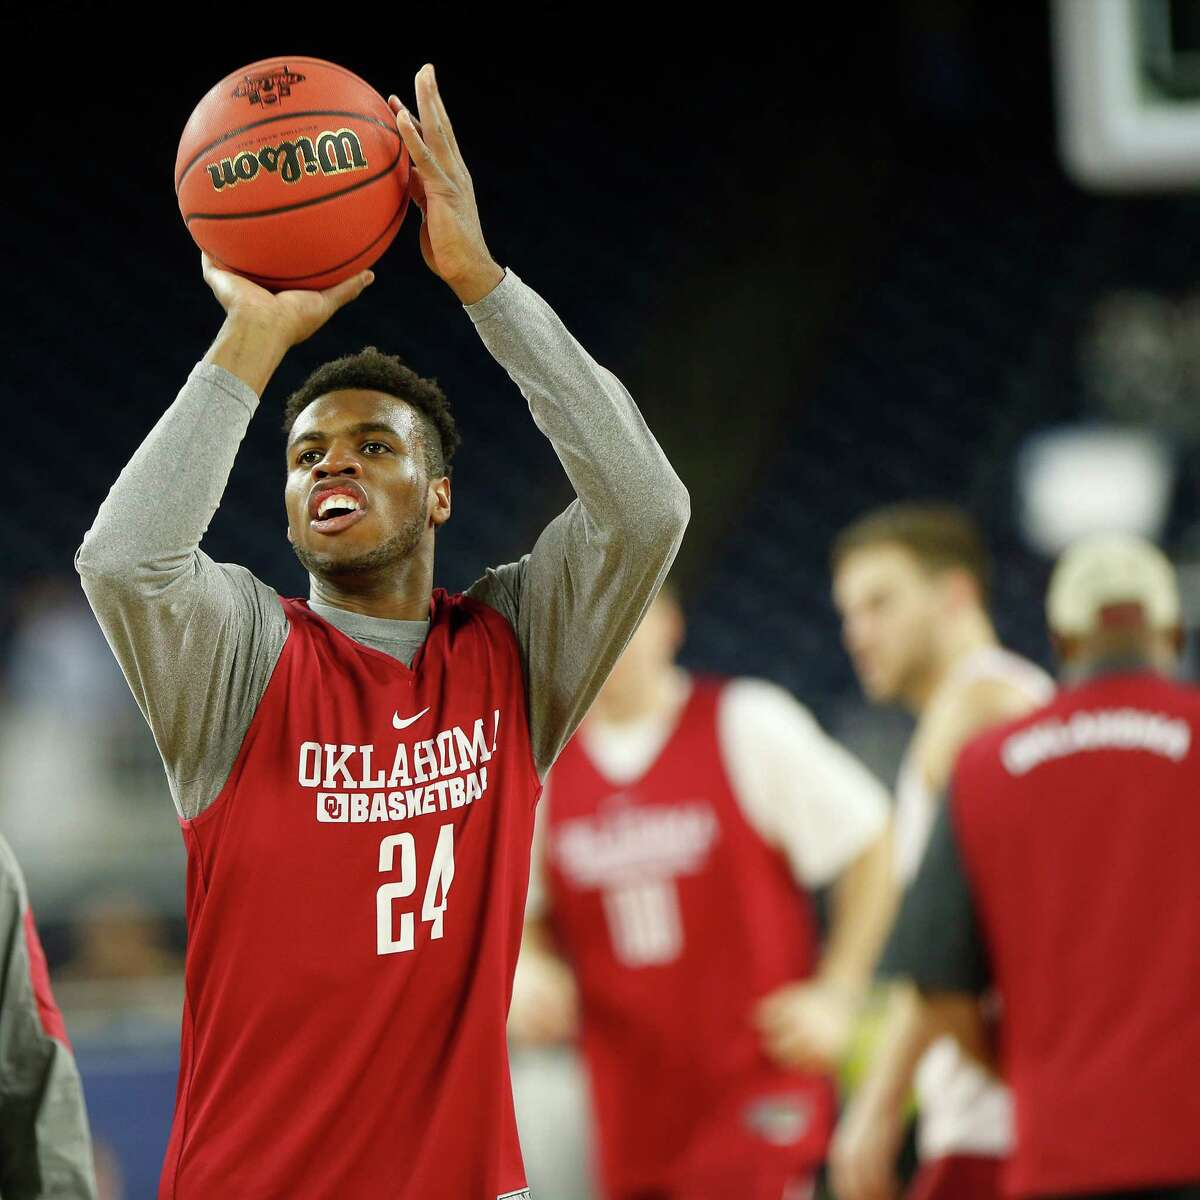 Oklahoma senior guard Buddy Hield (24) gets acclimated to the airy expanse of NRG Stadium on Friday when the Sooners held a workout ahead of their semifinal game against the Villanova Wildcats.